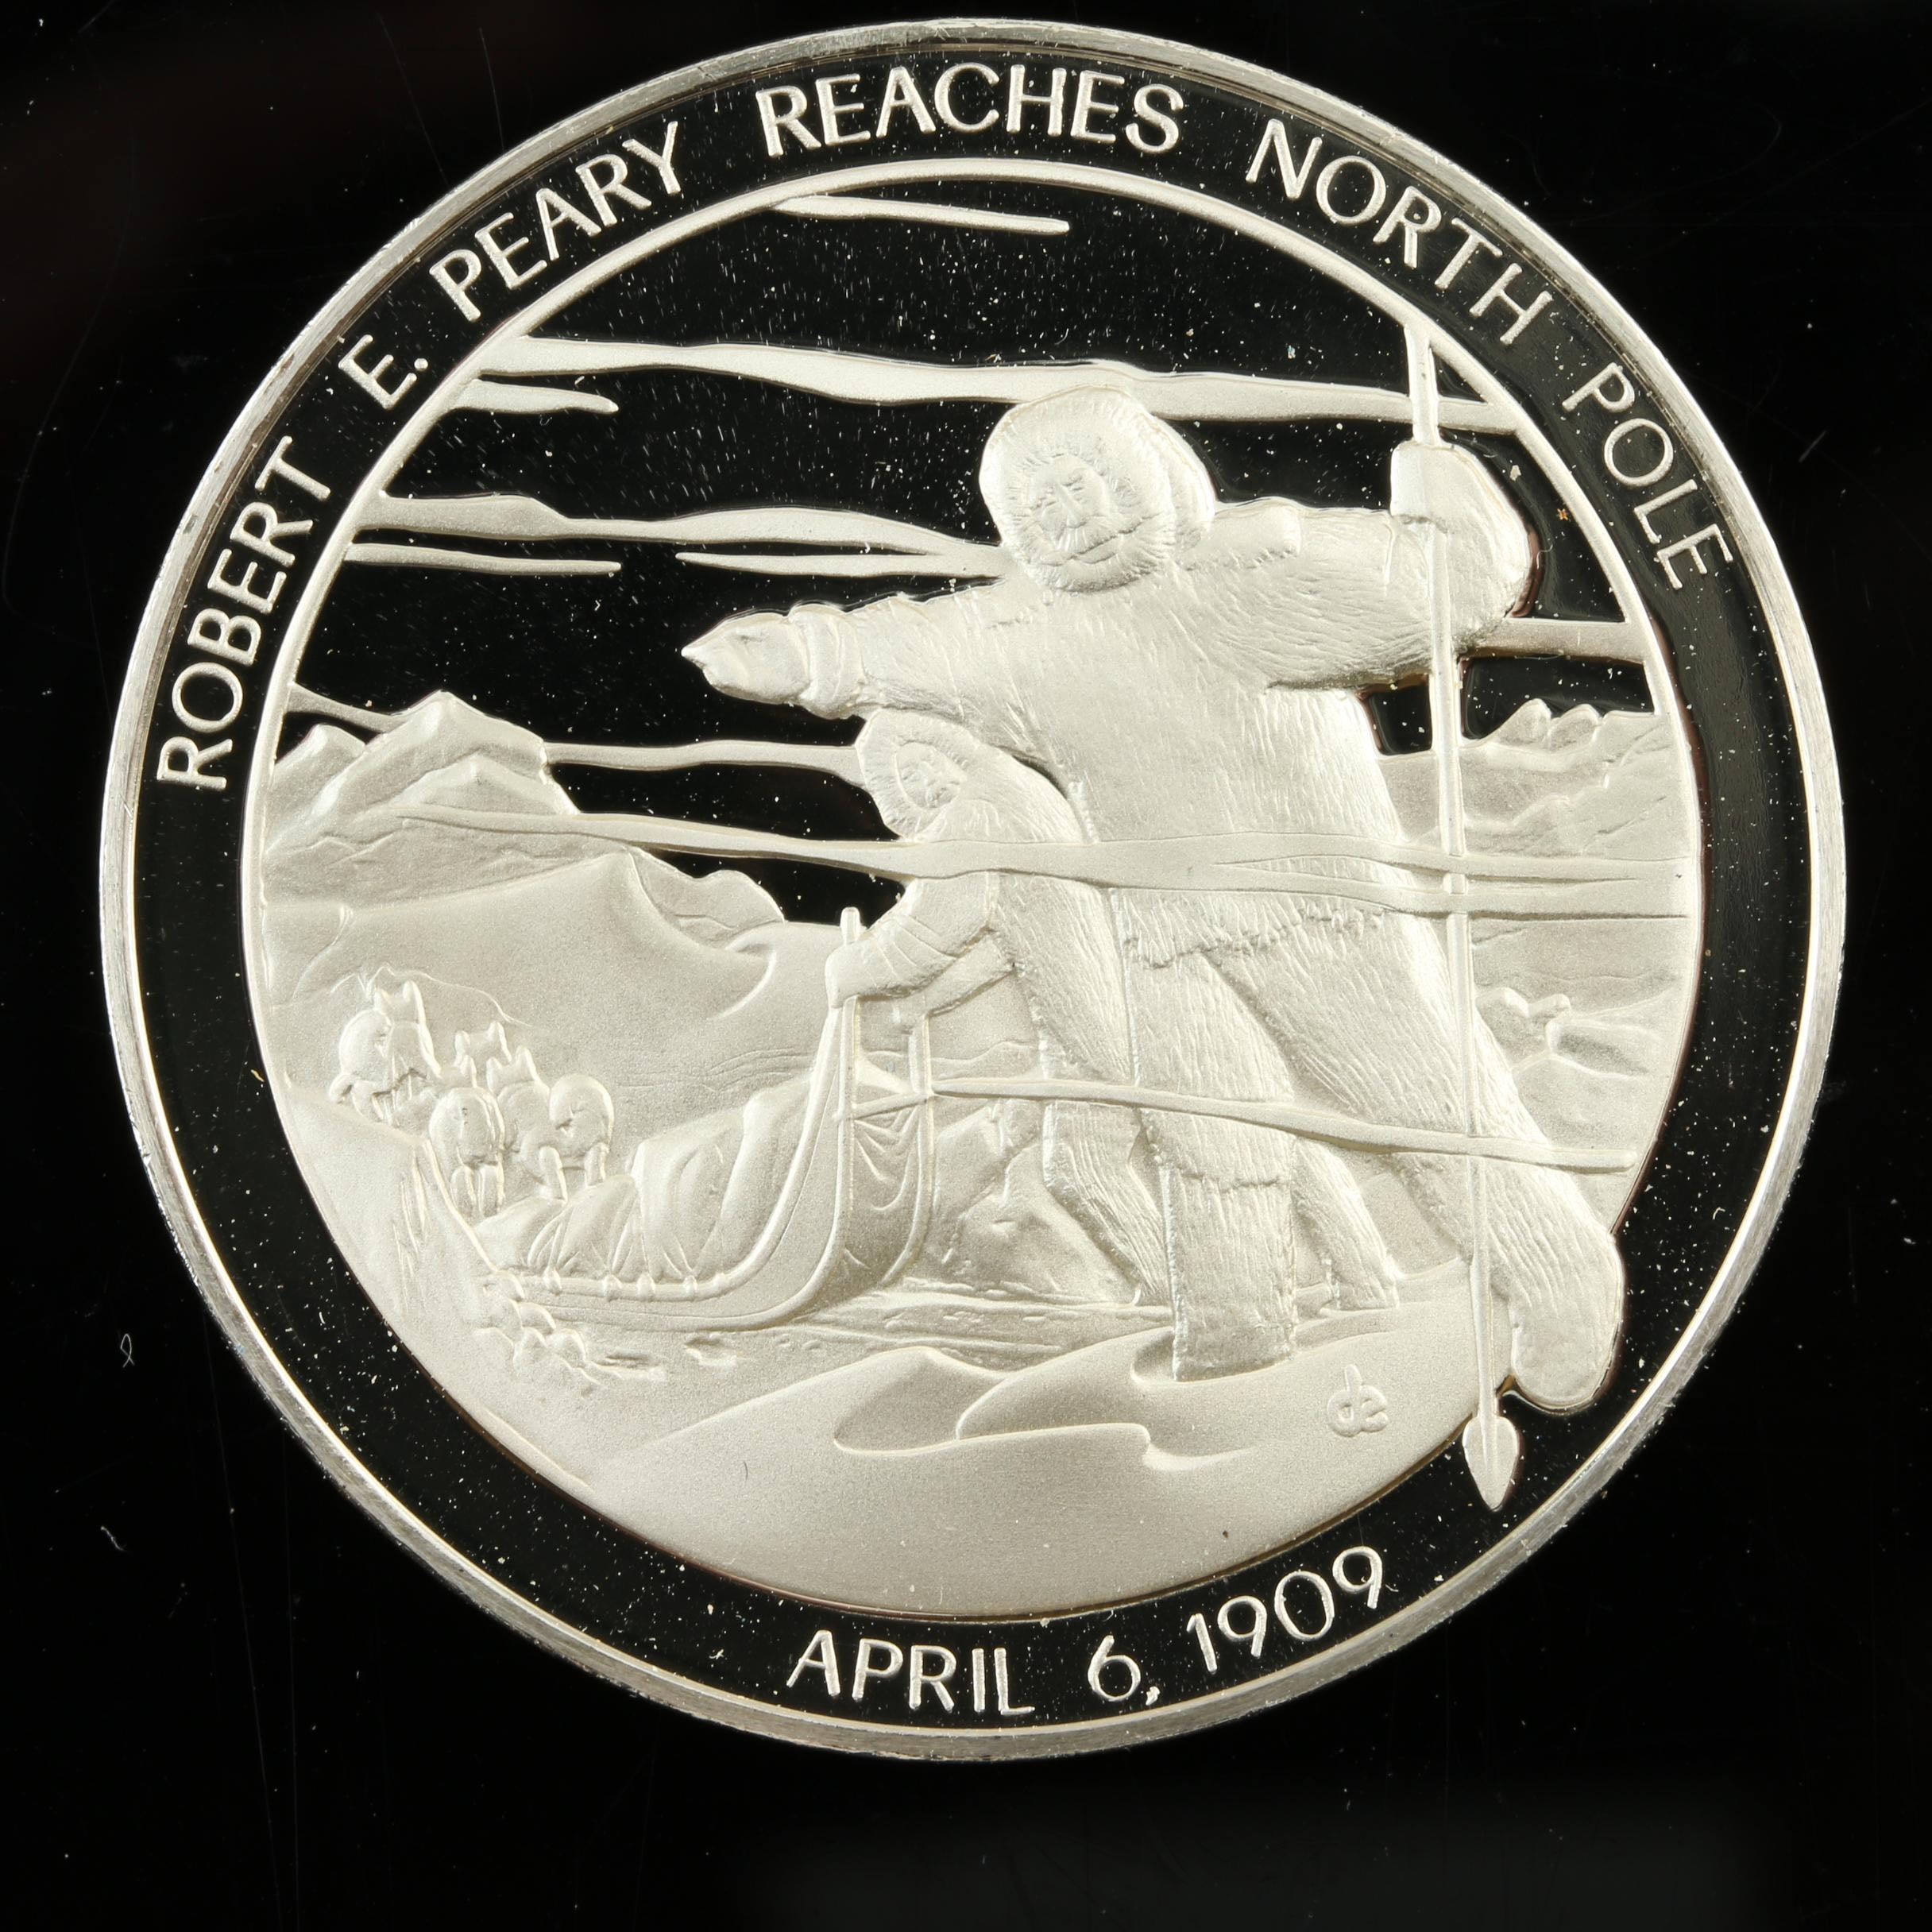 Sterling Silver Medal Commemorating Peary Reaching North Pole in 1909